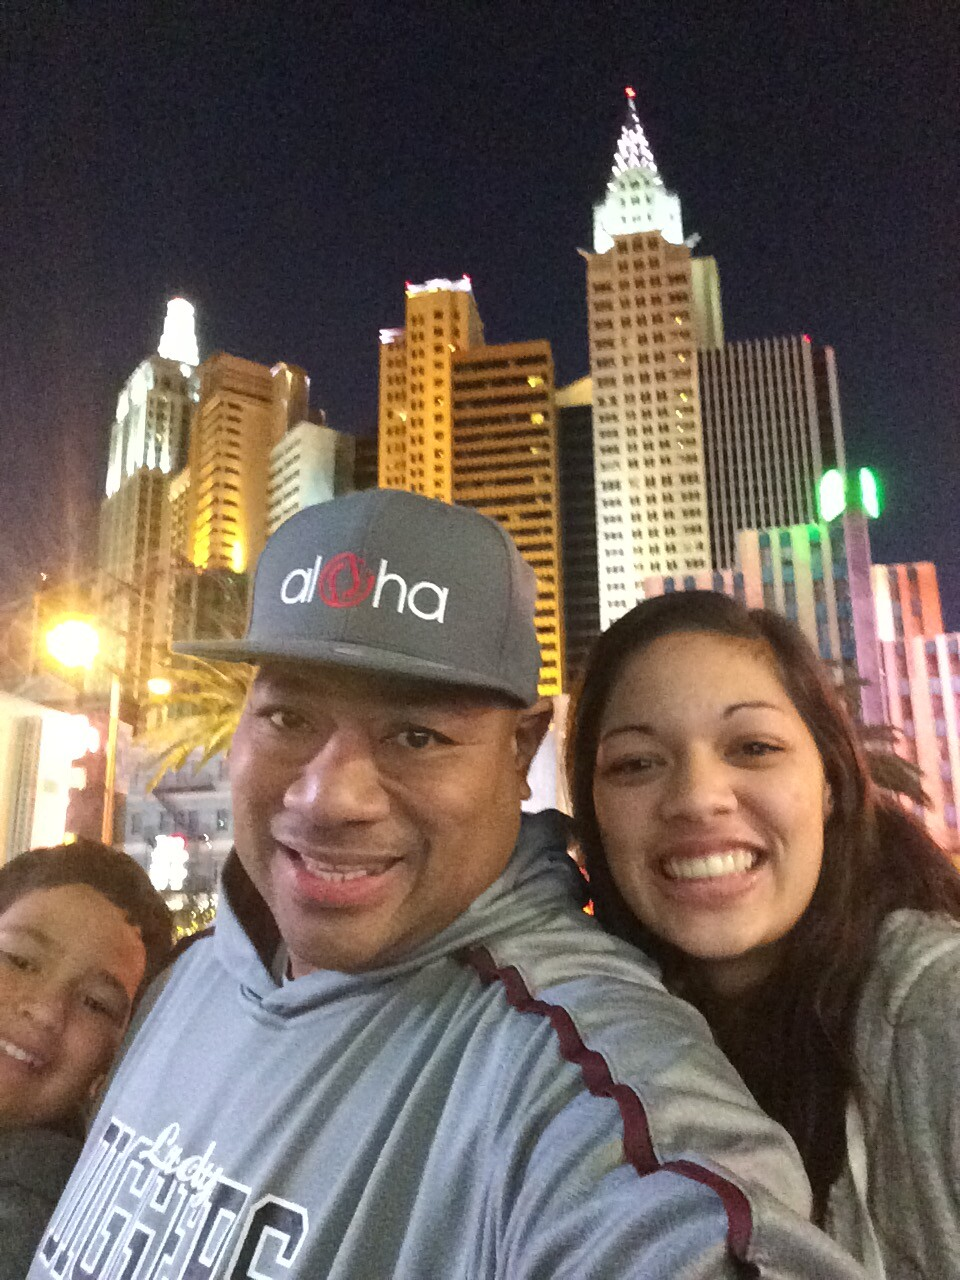 Photos: Big Budah's blog: R&R in Vegas and a pleasant start to 2015